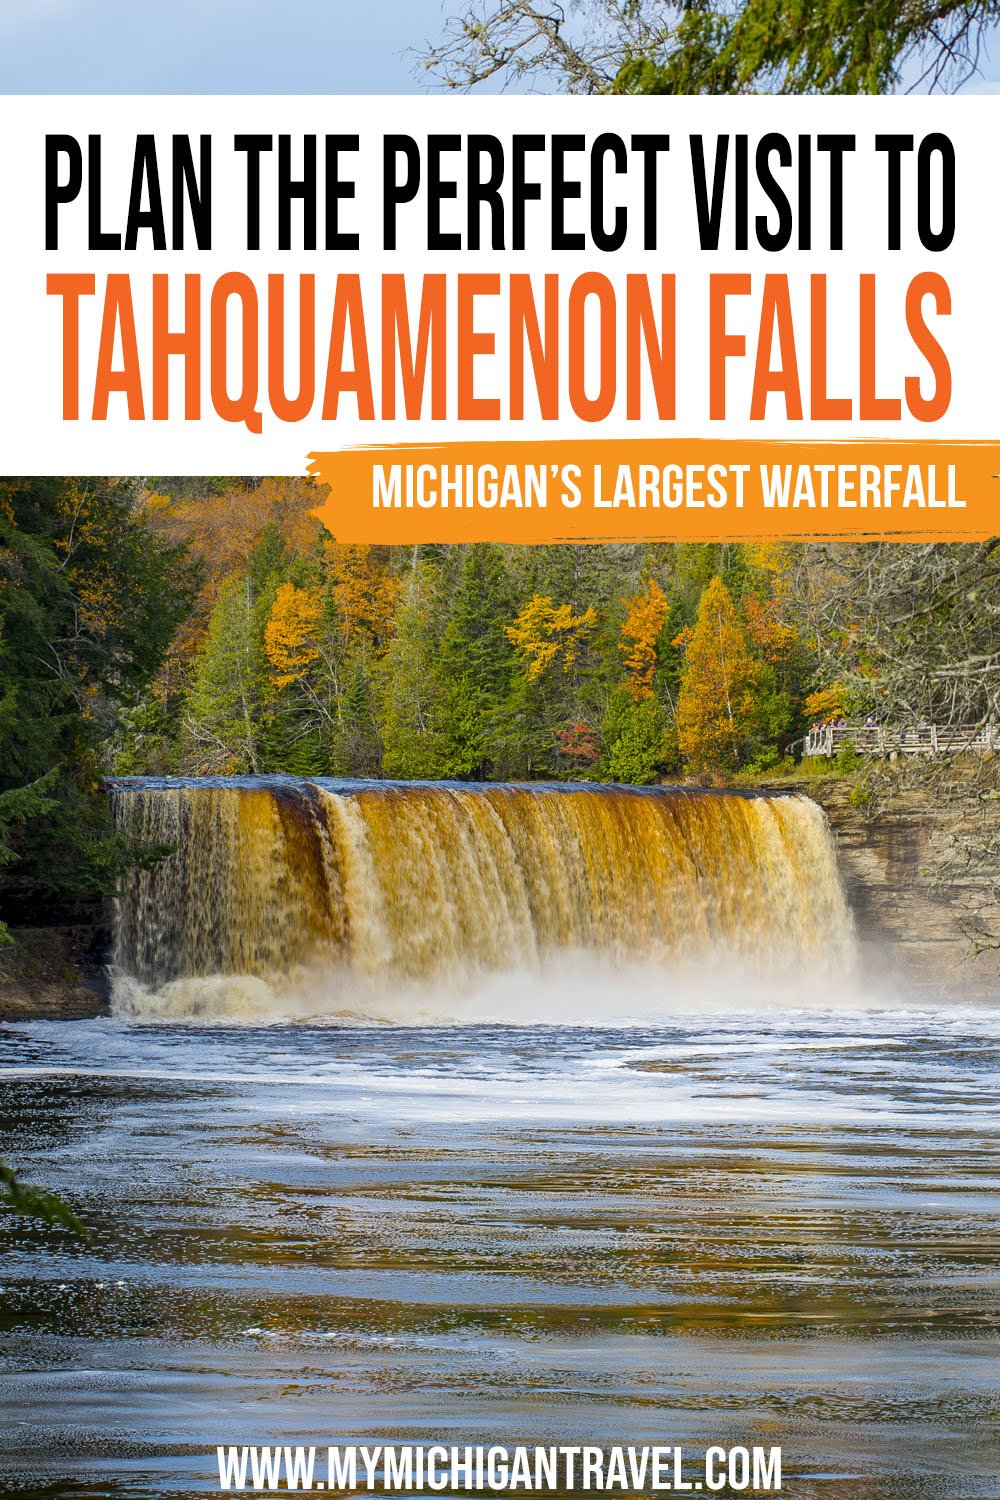 """Photo of Upper Tahquamenon Falls with brownish water flowing and colorful fall foliage in the background and text overlay reading """"Plan the perfect visit to Tahquamenon Falls - Michigan's largest waterfall"""""""